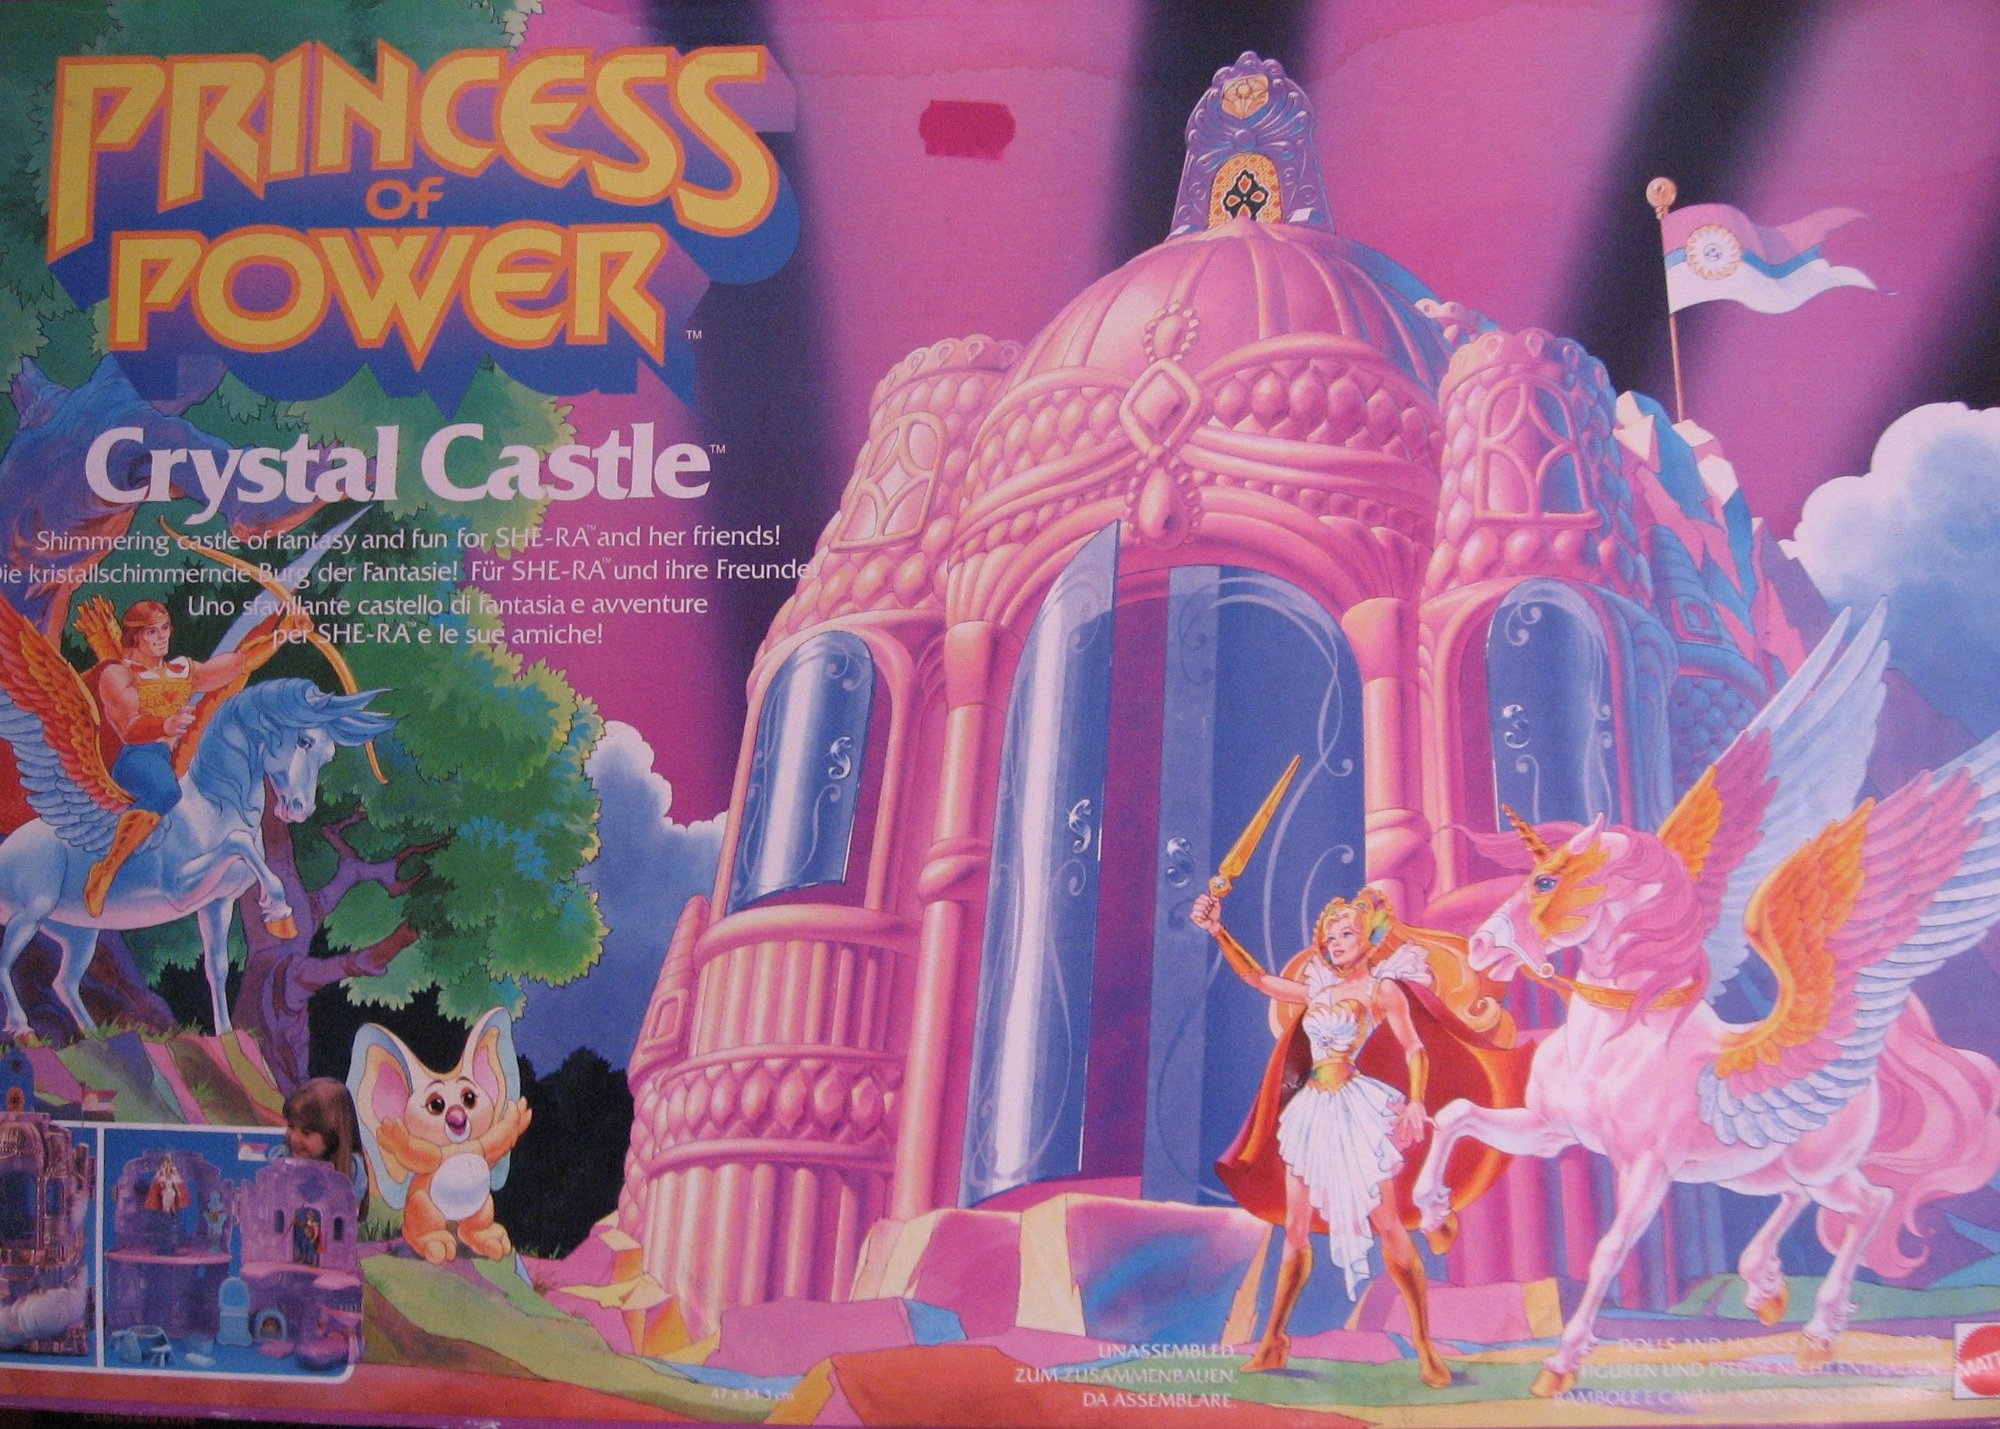 He Man Gt Toys Gt Princess Of Power Gt Crystal Castle